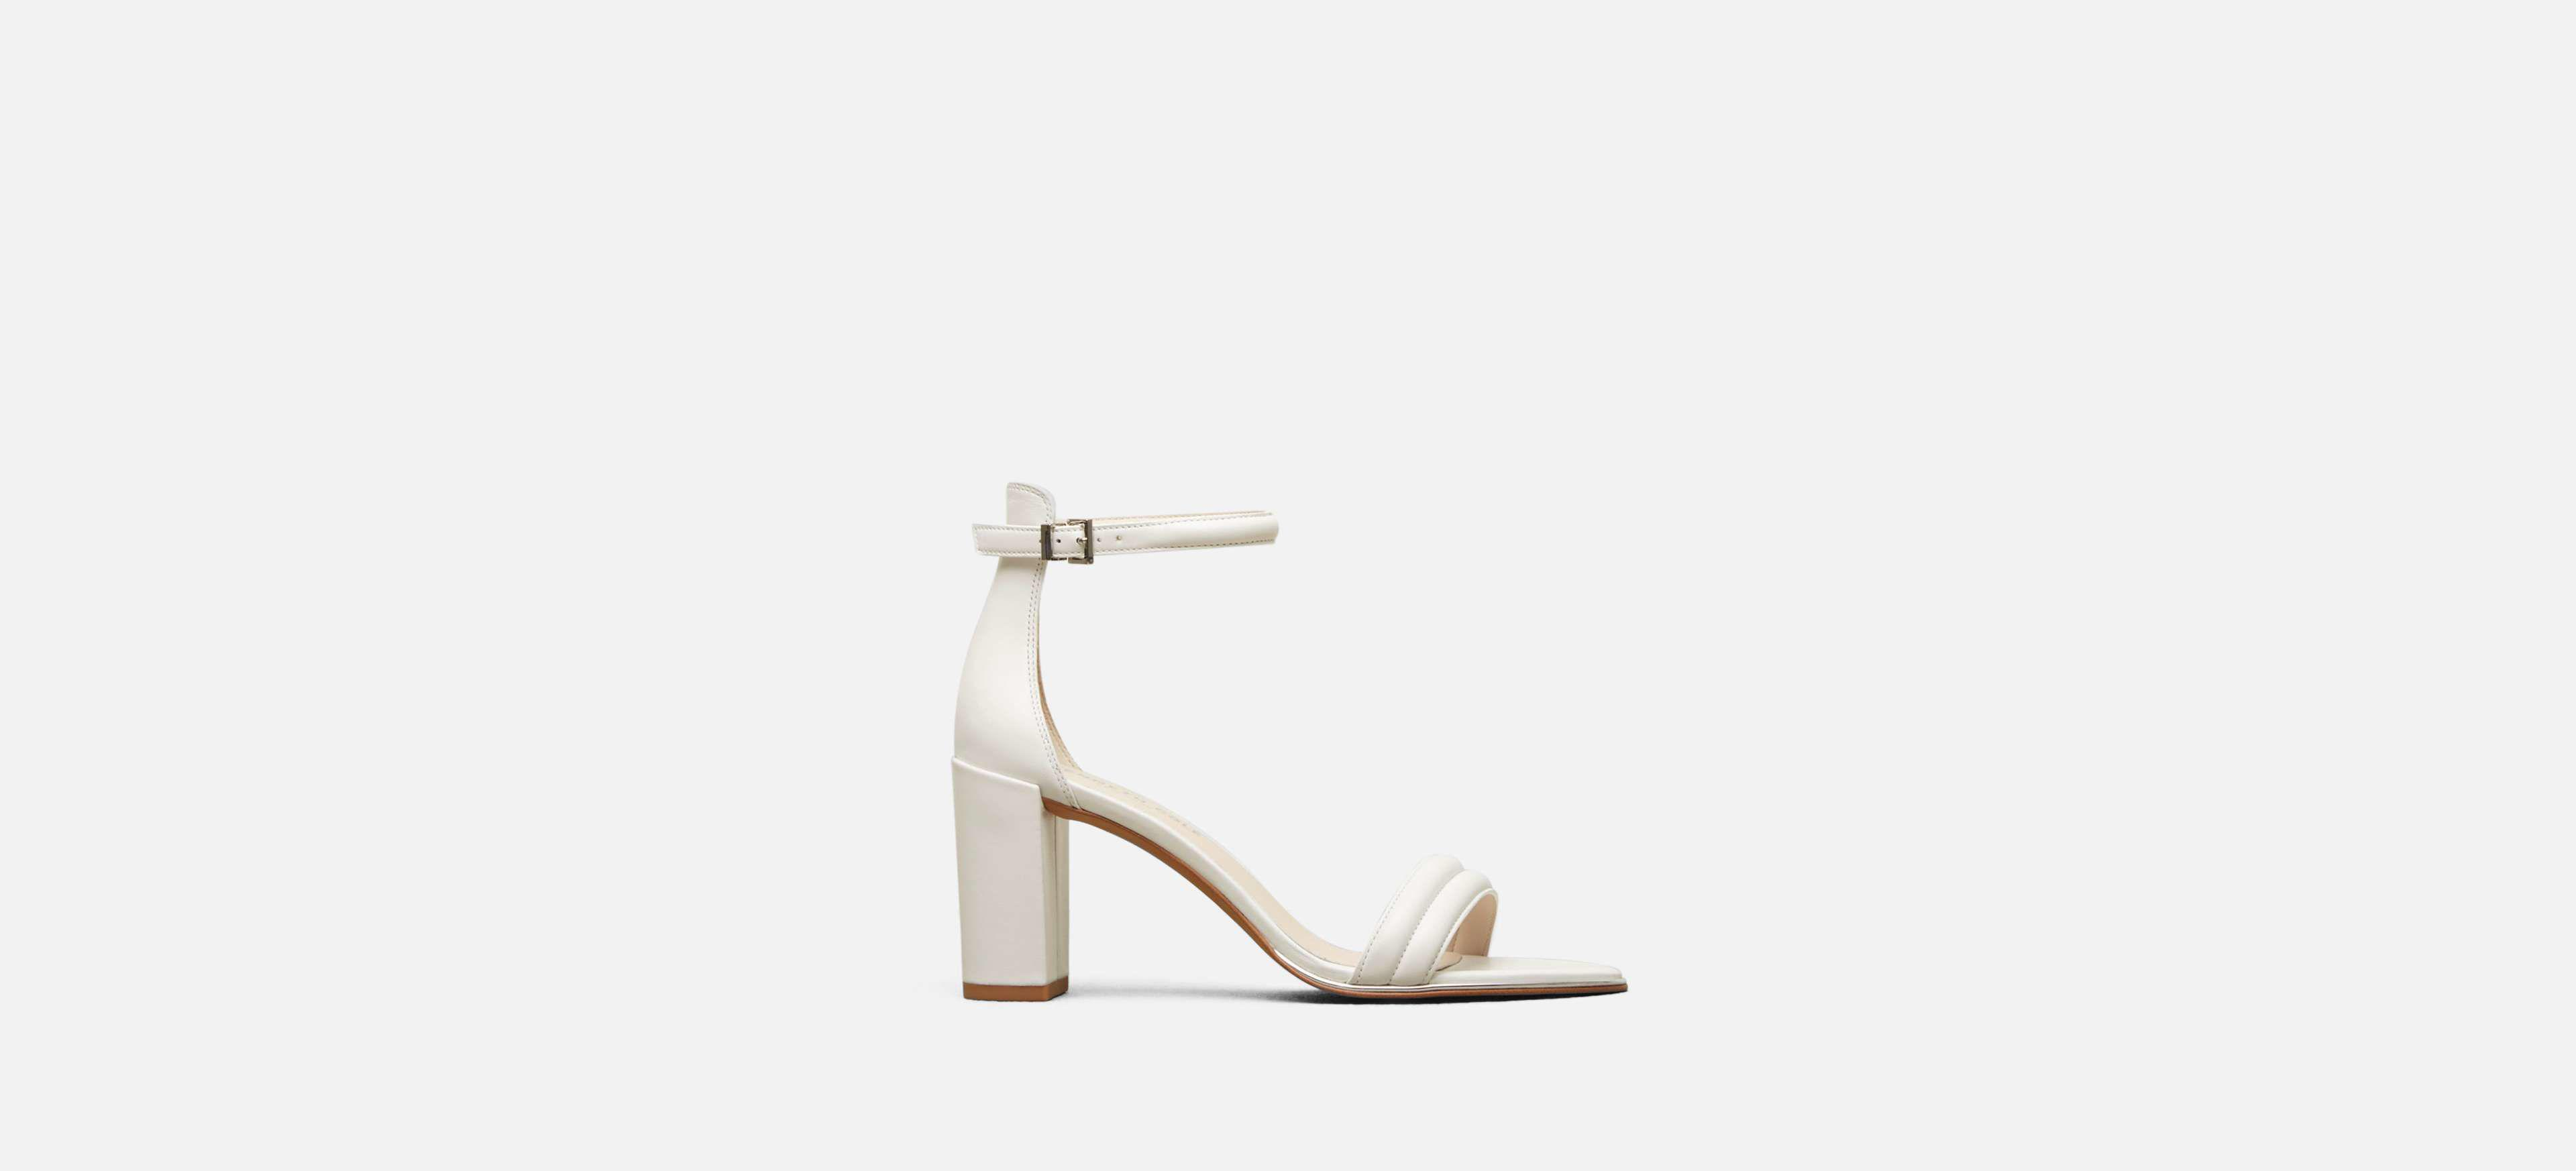 3883a42cd56 Lyst - Kenneth Cole Lex Ankle Strap Sandal Heel in White